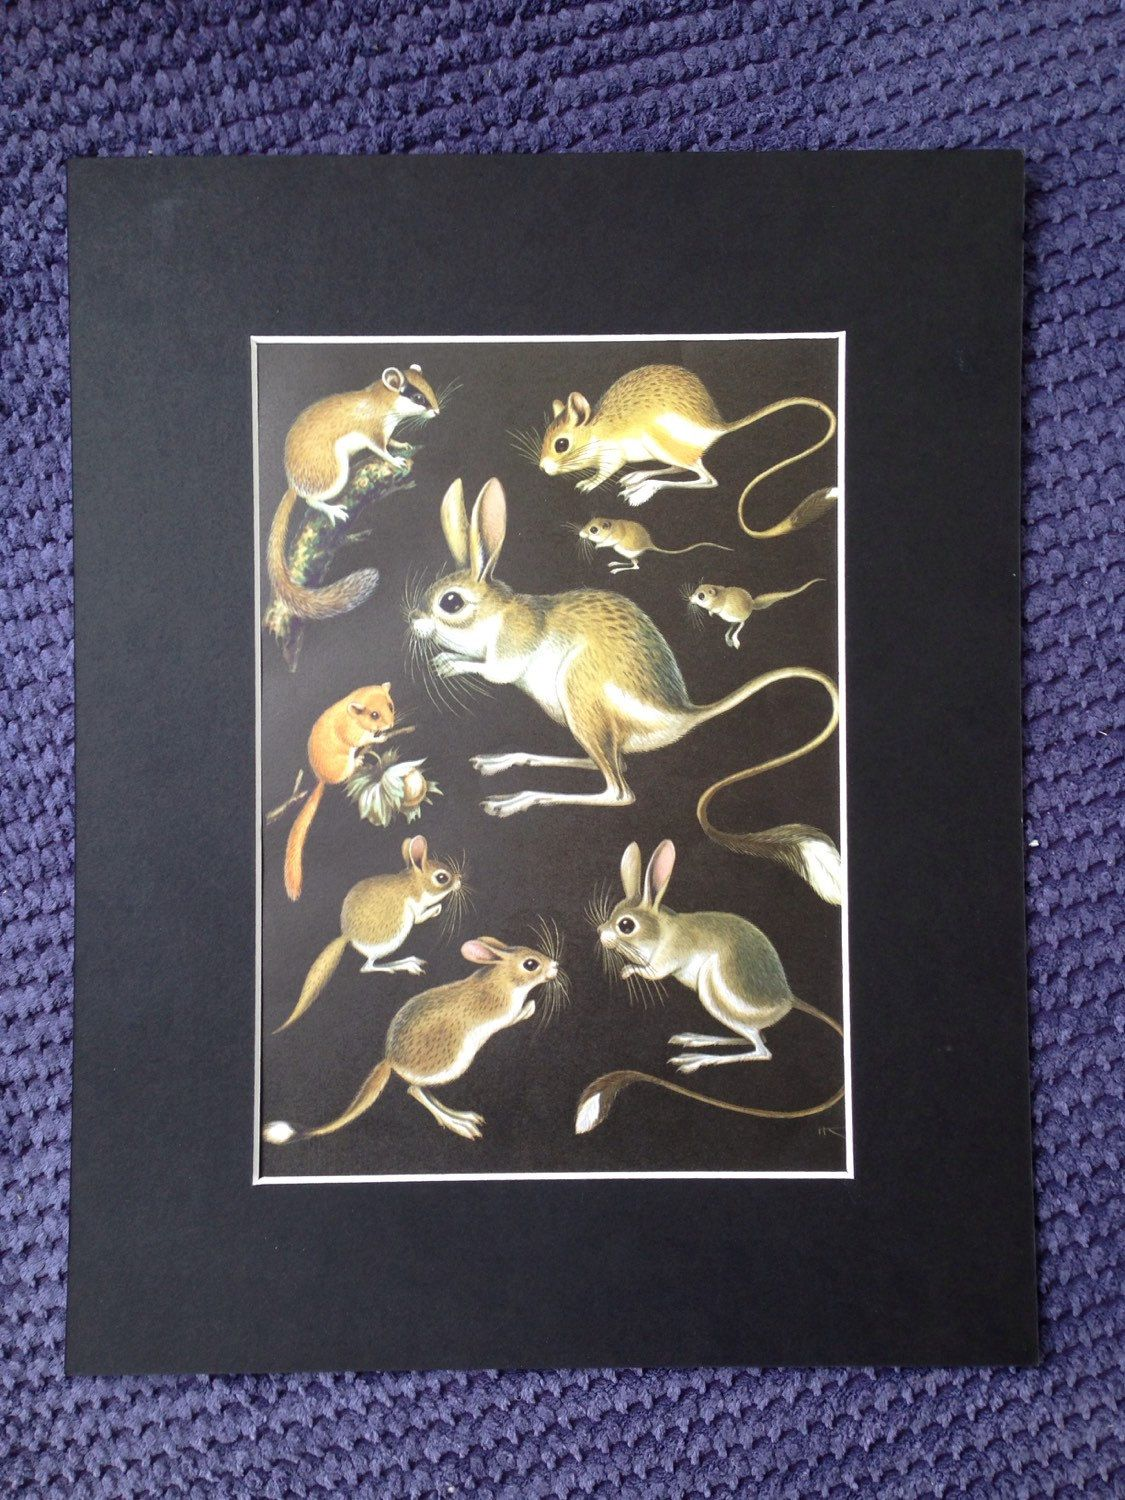 1968 Vintage Small Rodent Print - matted and ready to frame - 14 x ...